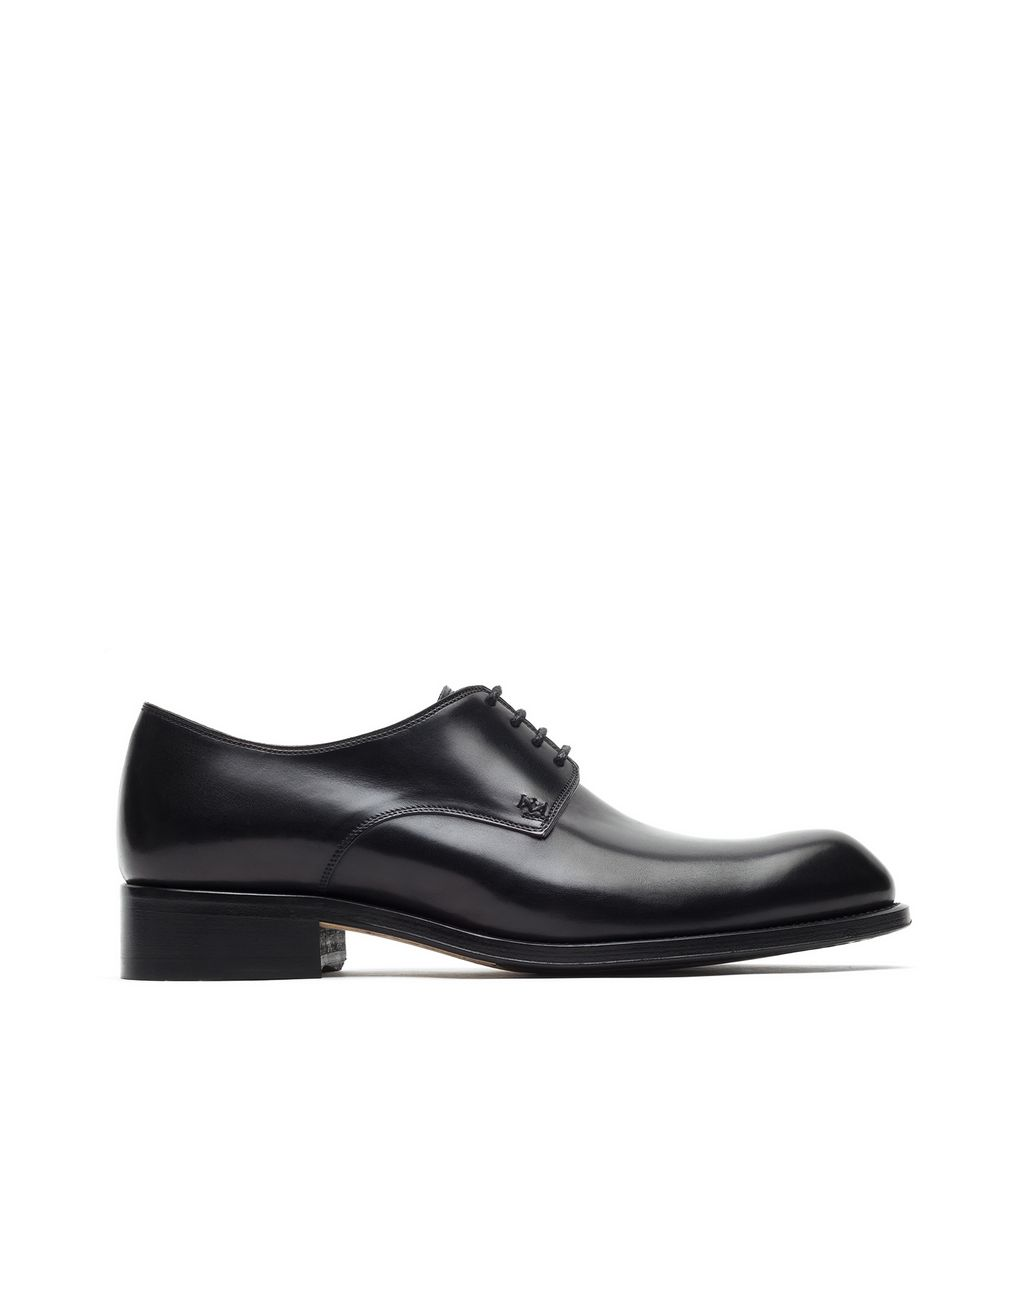 BRIONI Derby Nere in Pelle di Vitello   Calzature Formali [*** pickupInStoreShippingNotGuaranteed_info ***] f